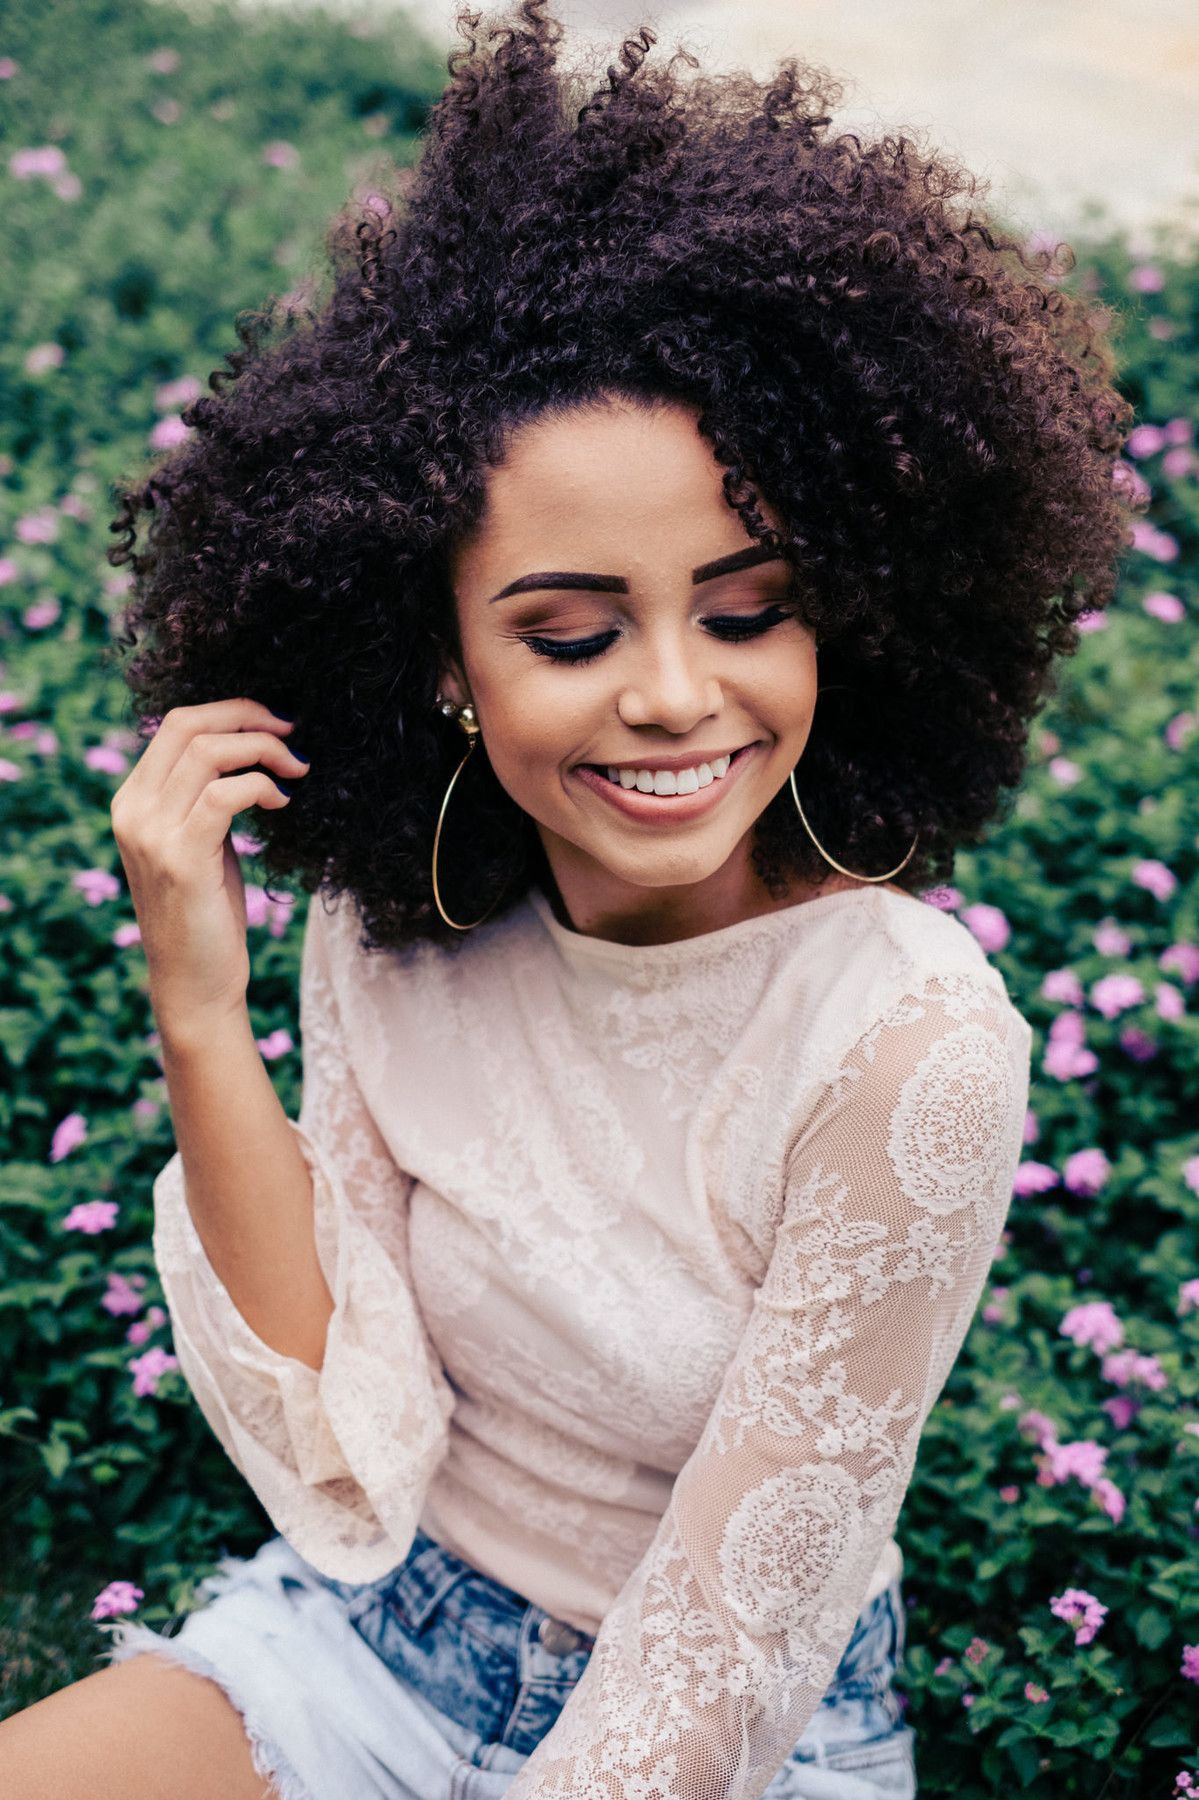 superior black women dating site Blackpeoplemeetcom is the largest black dating site for black singles in  multi dating for black women how to score at the grocery store.